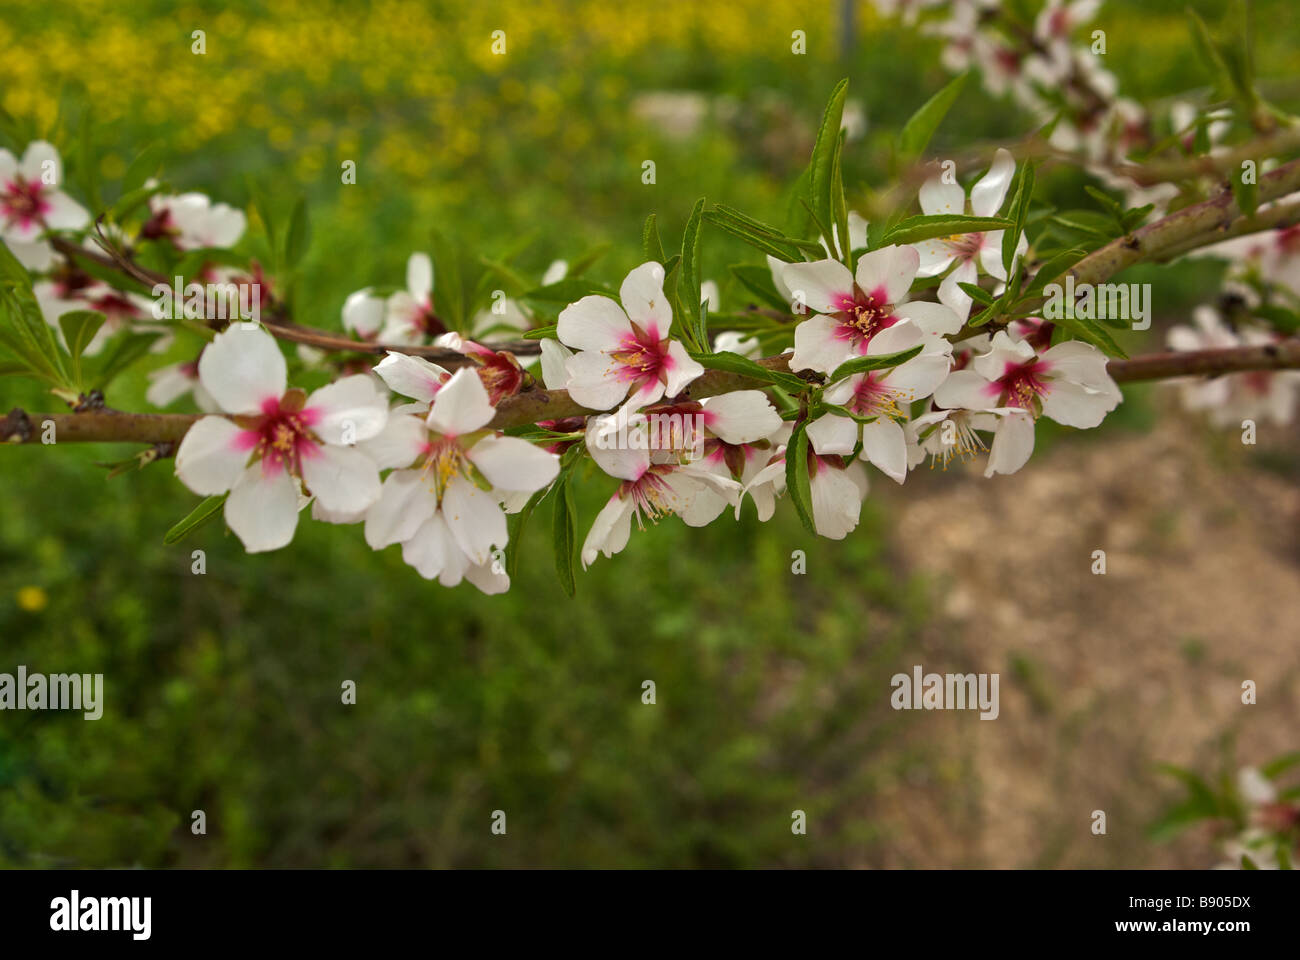 Beautiful white crimsom centred almond tree blossoms Zippori or Sepphoris - Stock Image